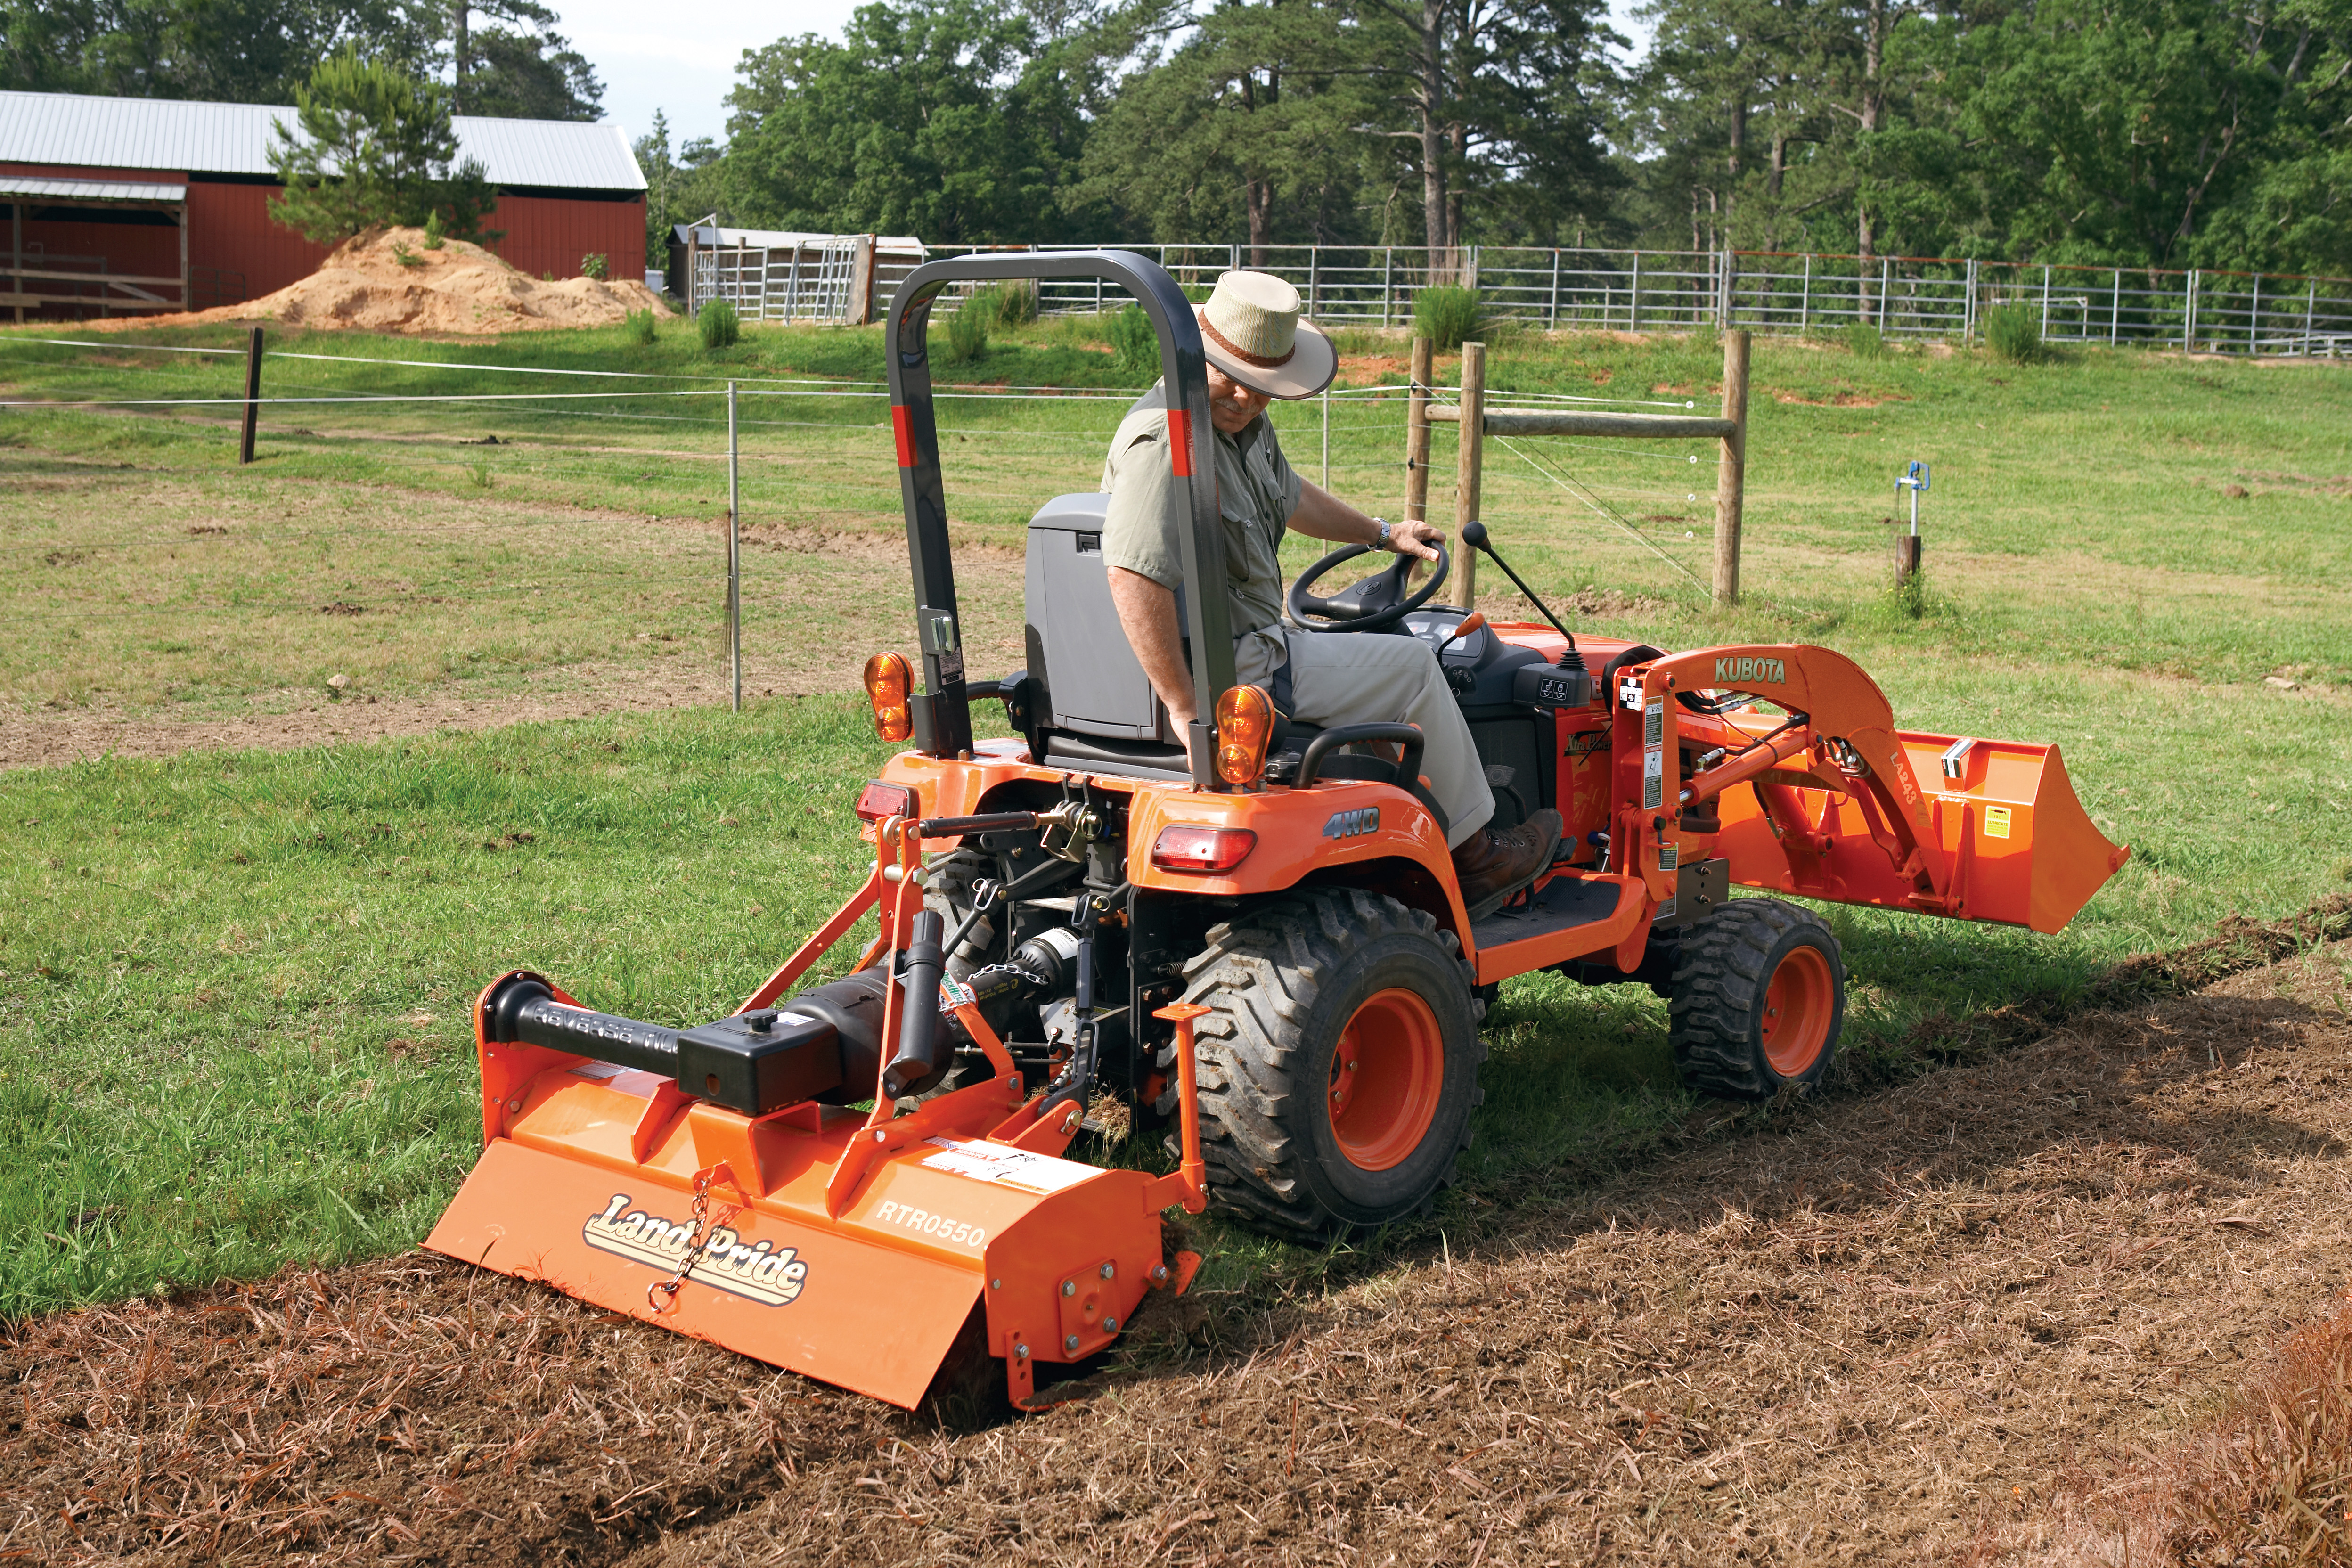 Small Tractor Implements For Gardening : Rtr series rotary tillers land pride